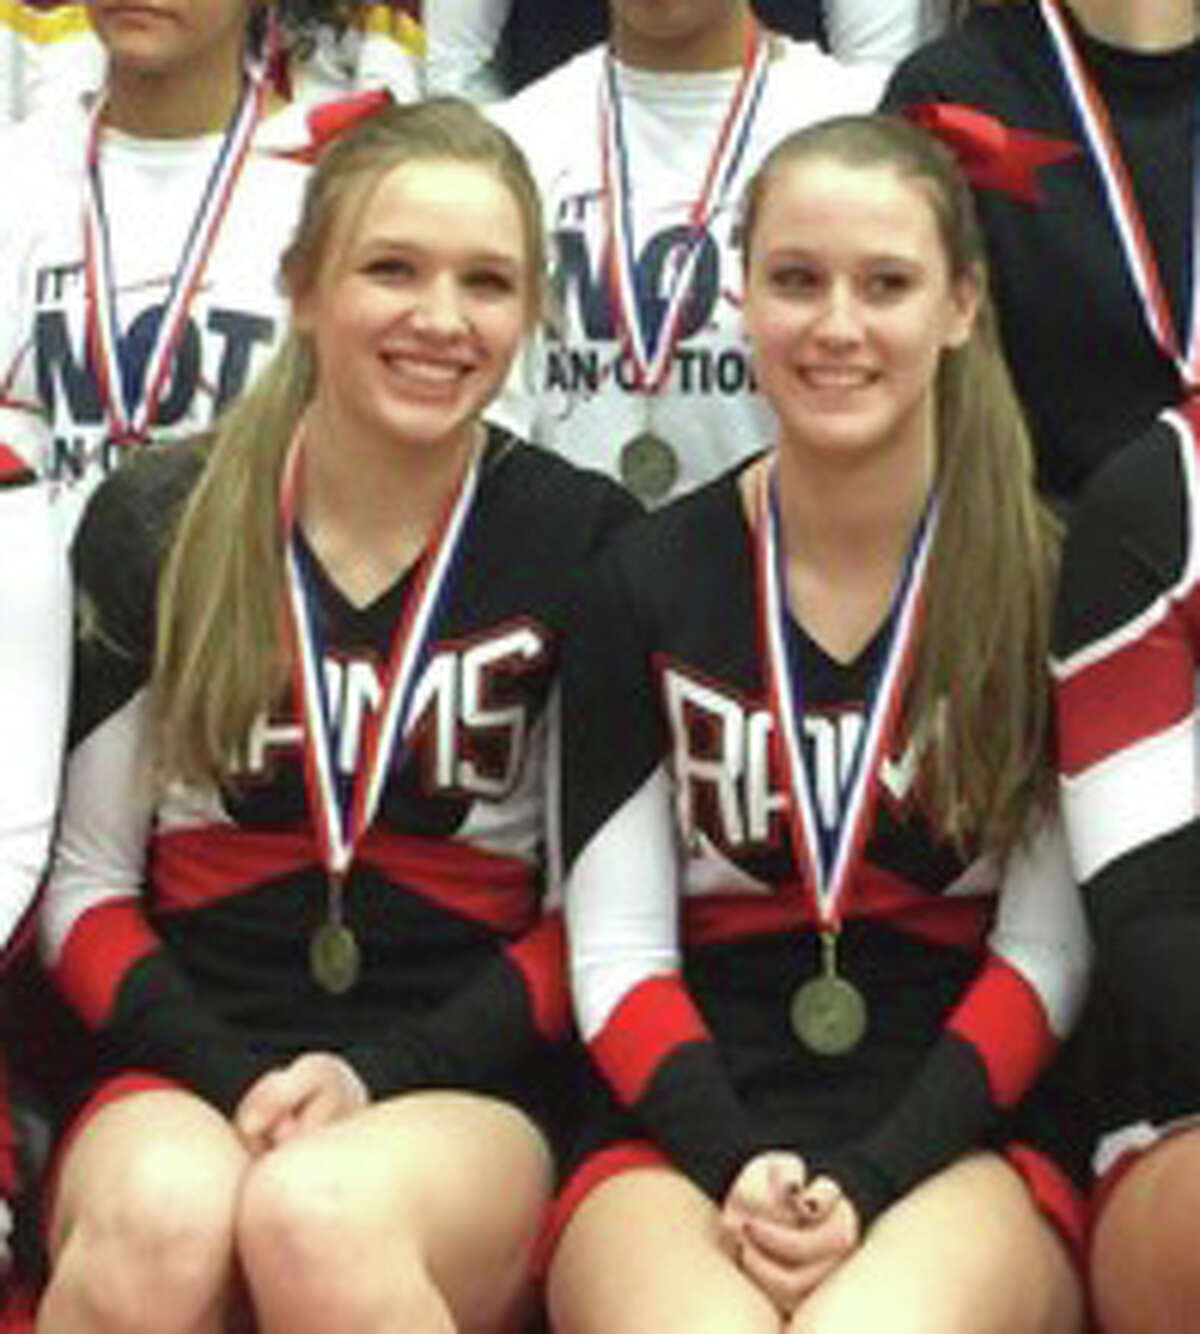 Katherine Luciano (left), and Bridget Callahan pose in between all the FCIAC cheerleaders that earned All-FCIAC honors.